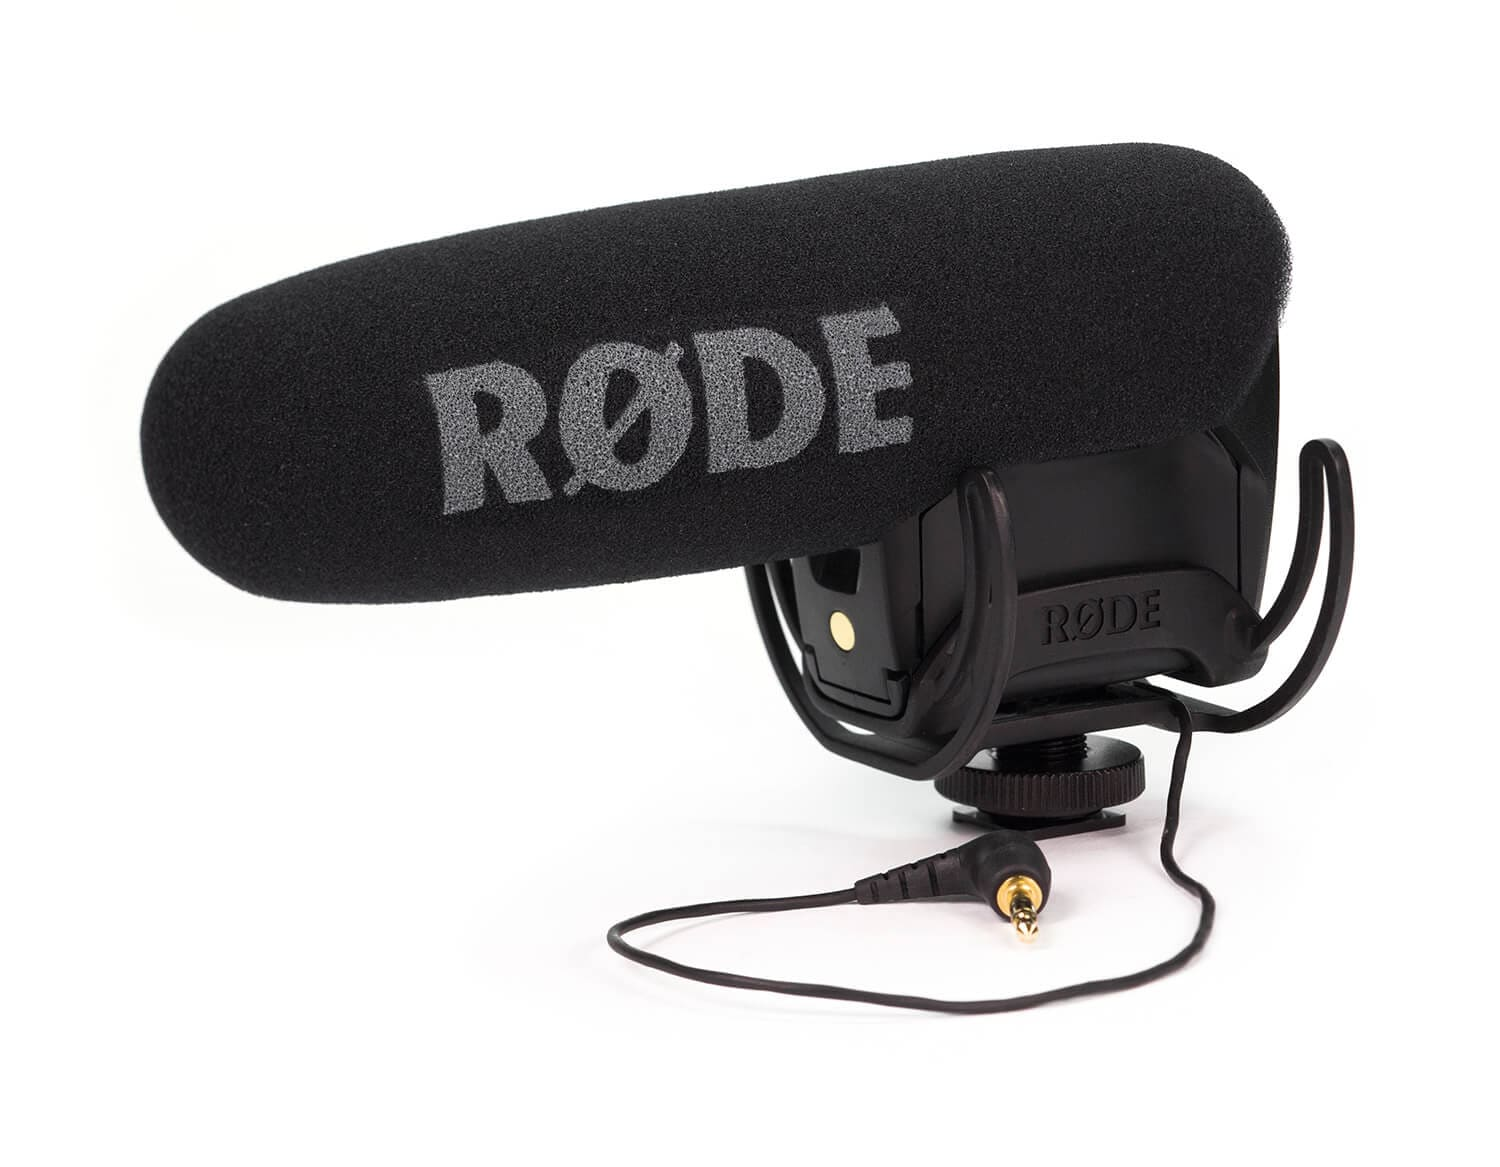 Best Microphone for Action and Fitness: Rode VMPR VideoMic Pro R with Rycote Lyre Shockmount